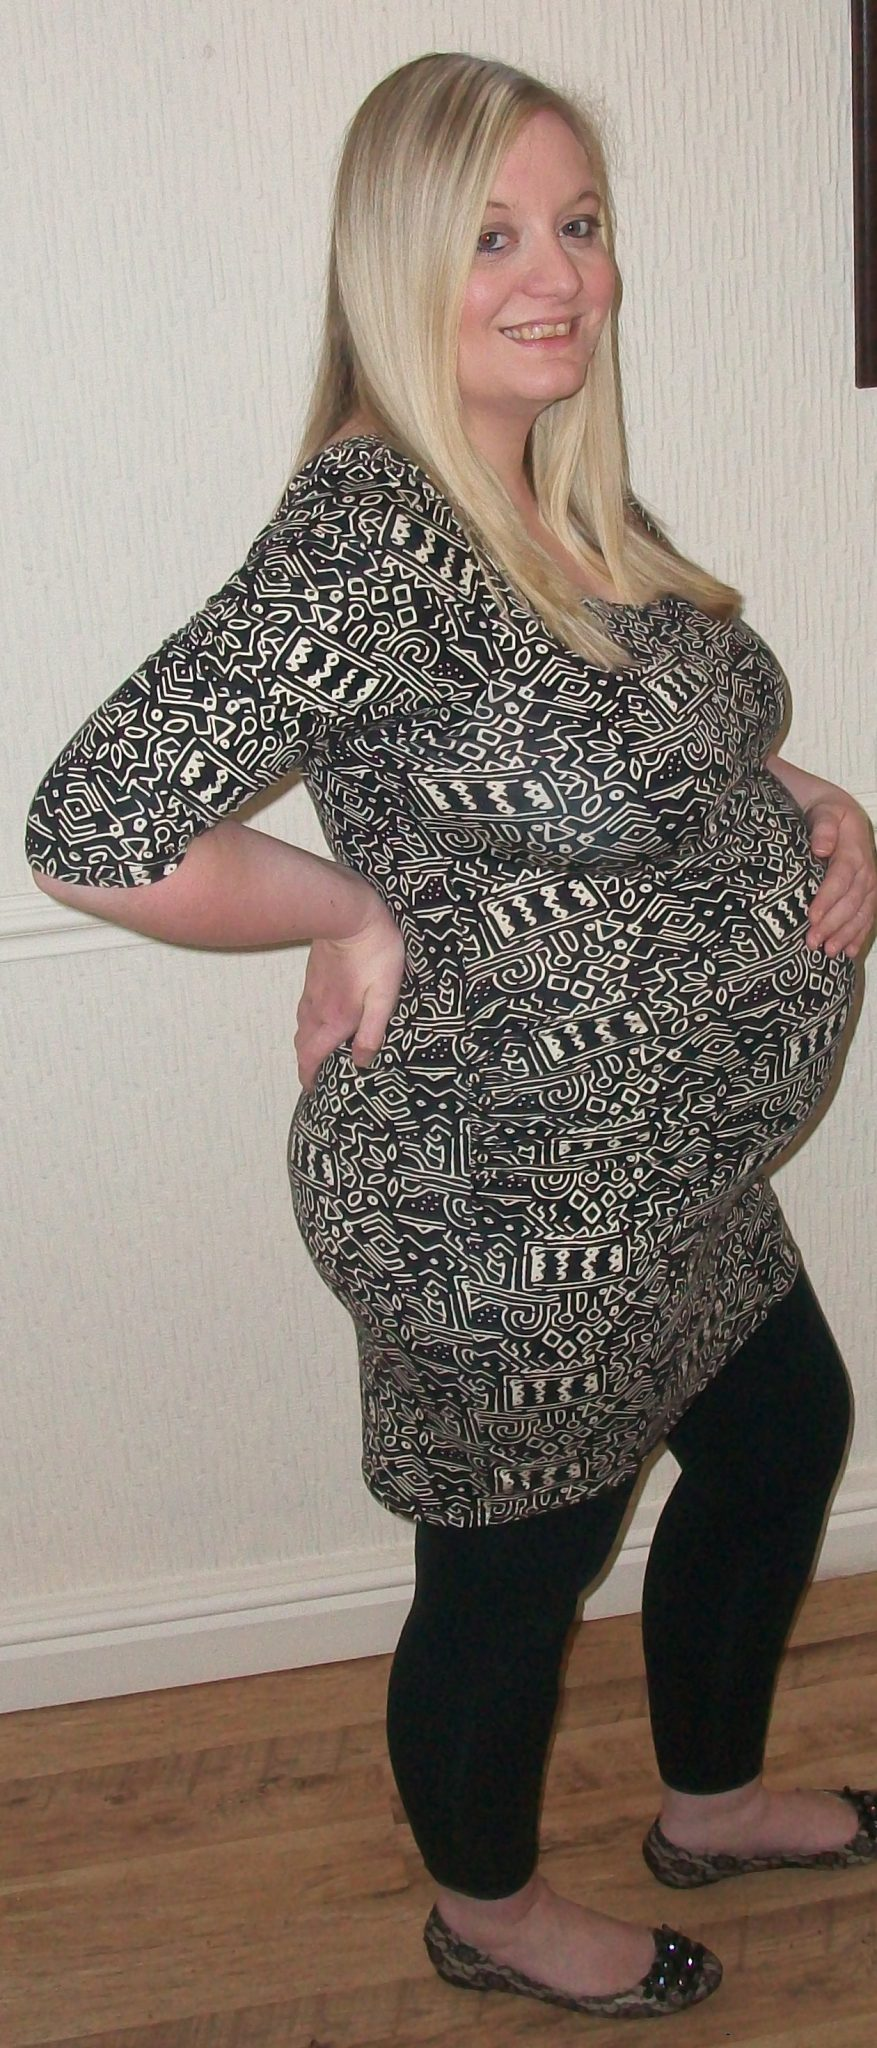 Profile of a Budgeting Mum to Be: Hayley from Sparkles and Stretchmarks